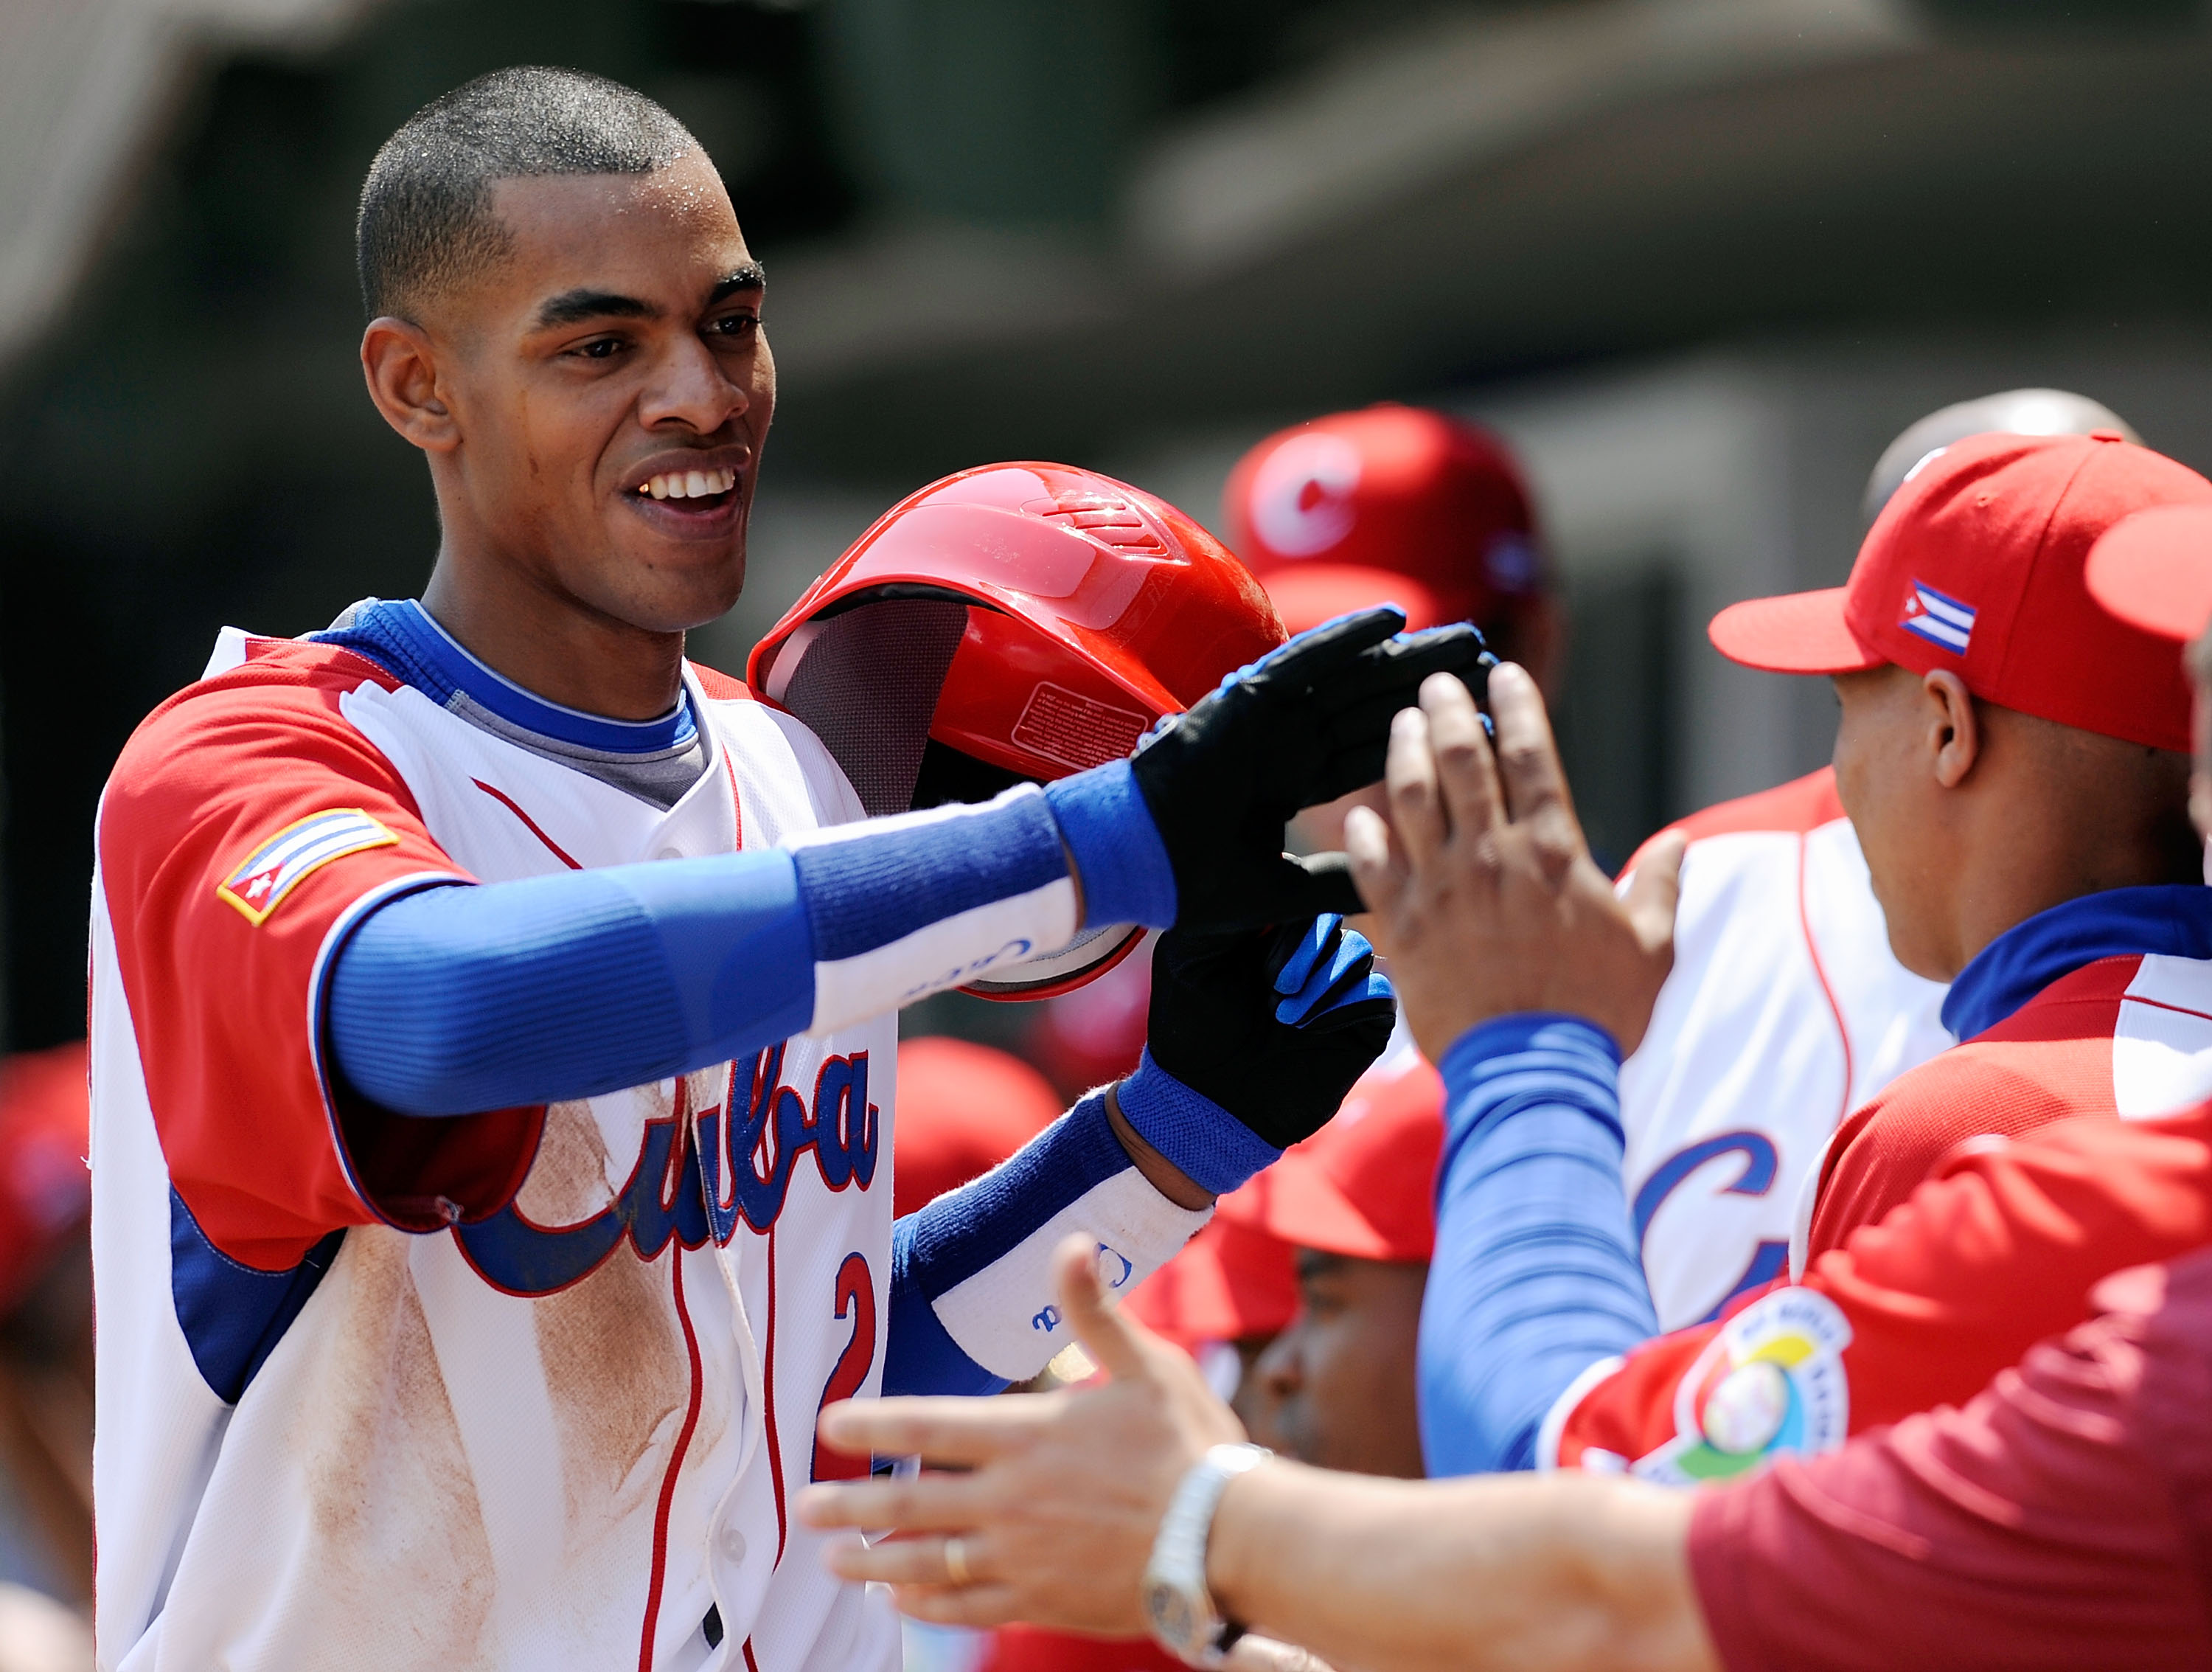 Note: Not a current image of Hector Olivera (almost 6 years old)